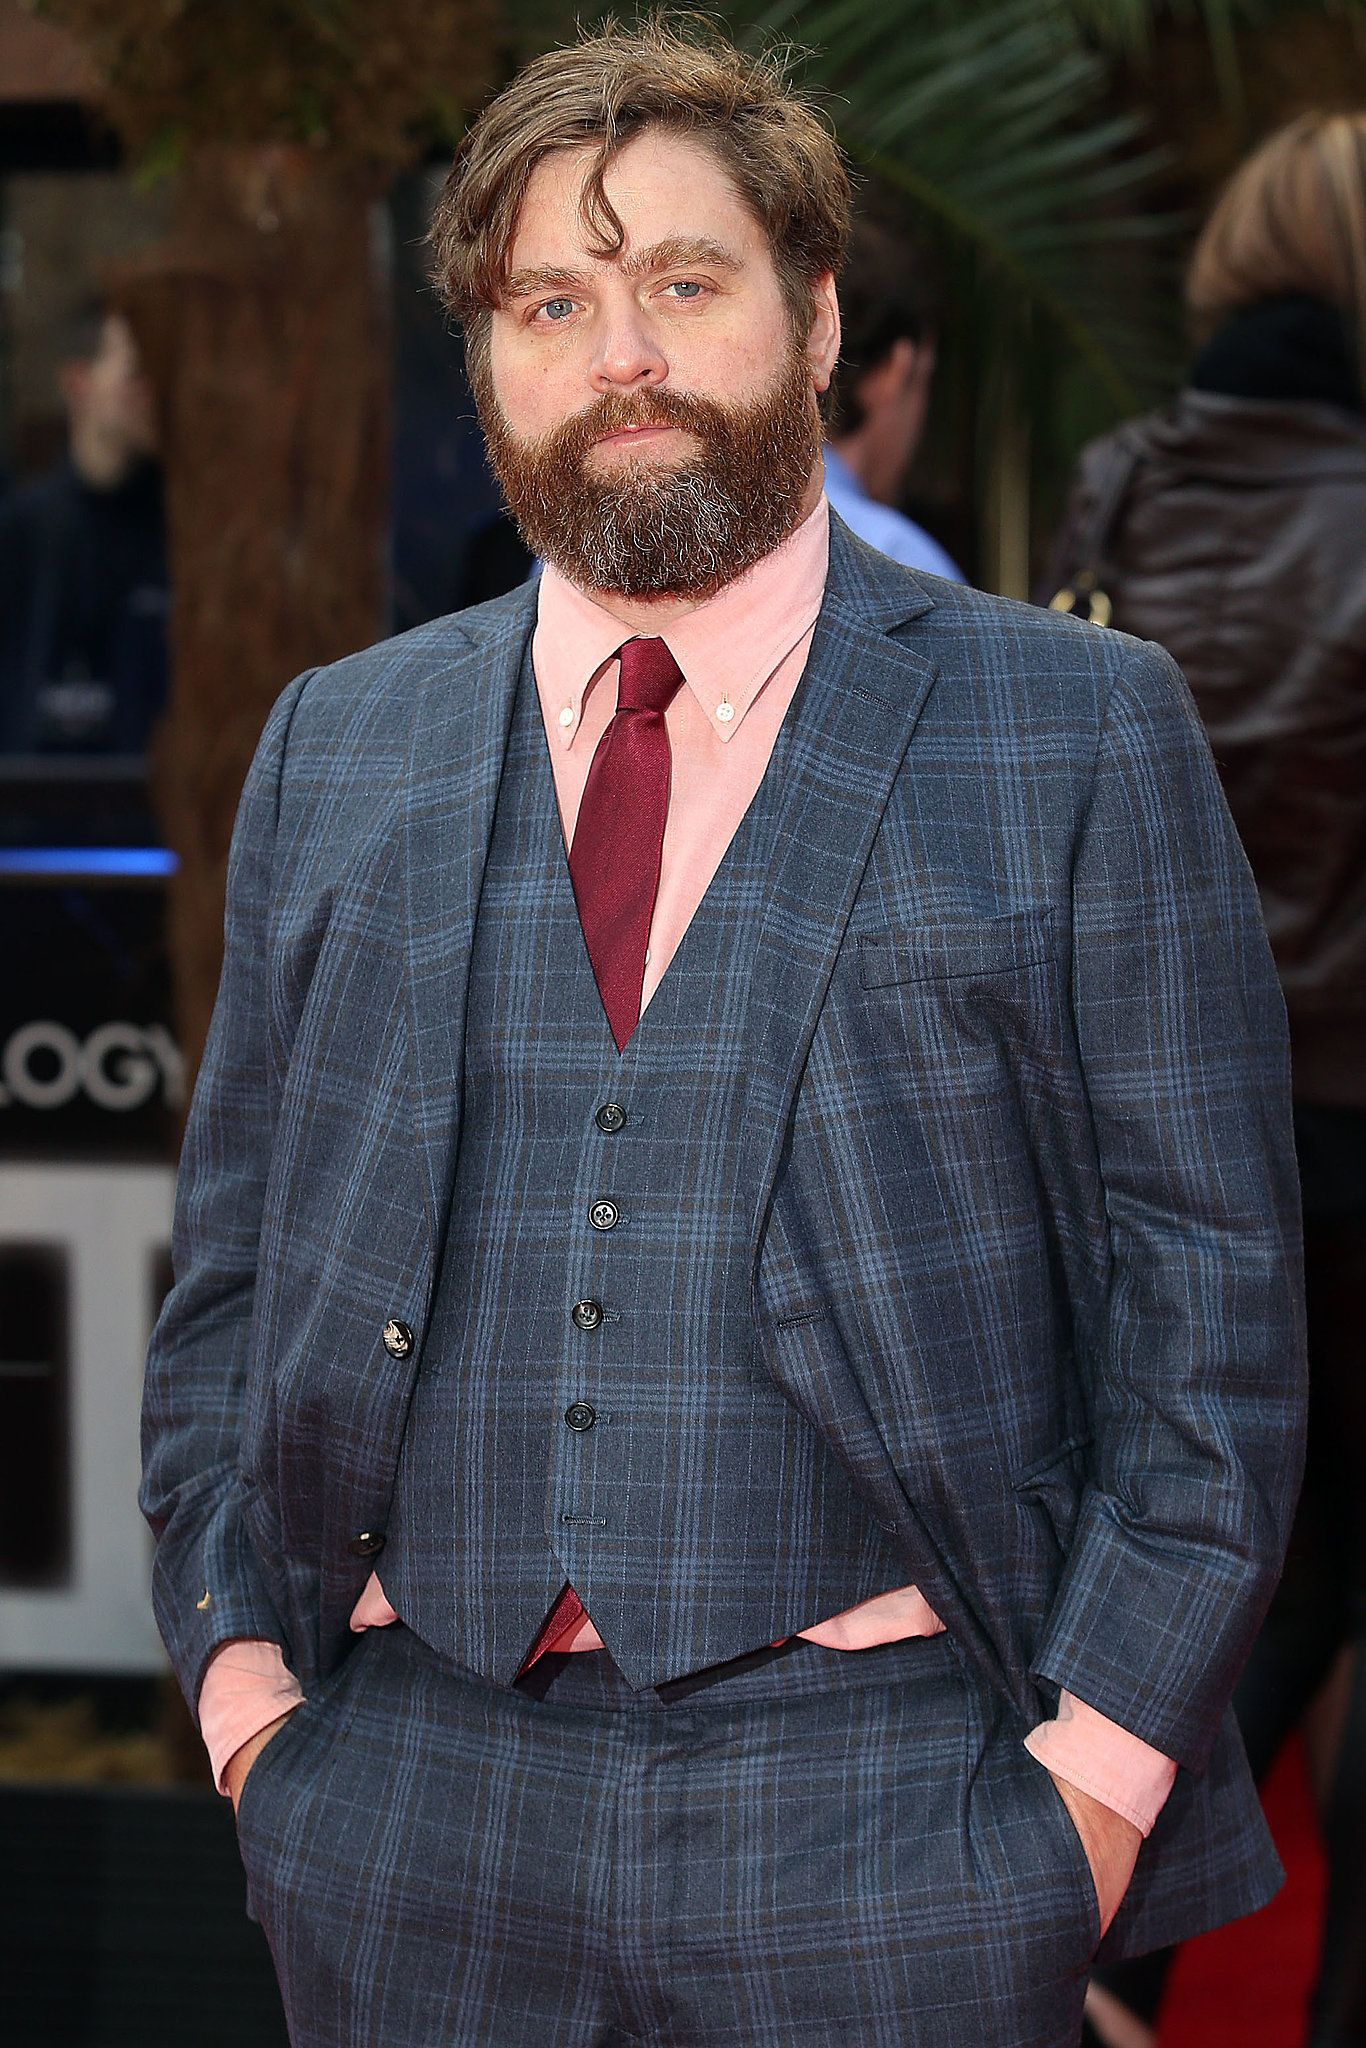 Although Zach Galifianakis Was Recently Married He S Still Prepping His Dad Bod For When They Decide To Have A Baby The Hangover Actor Shows Off